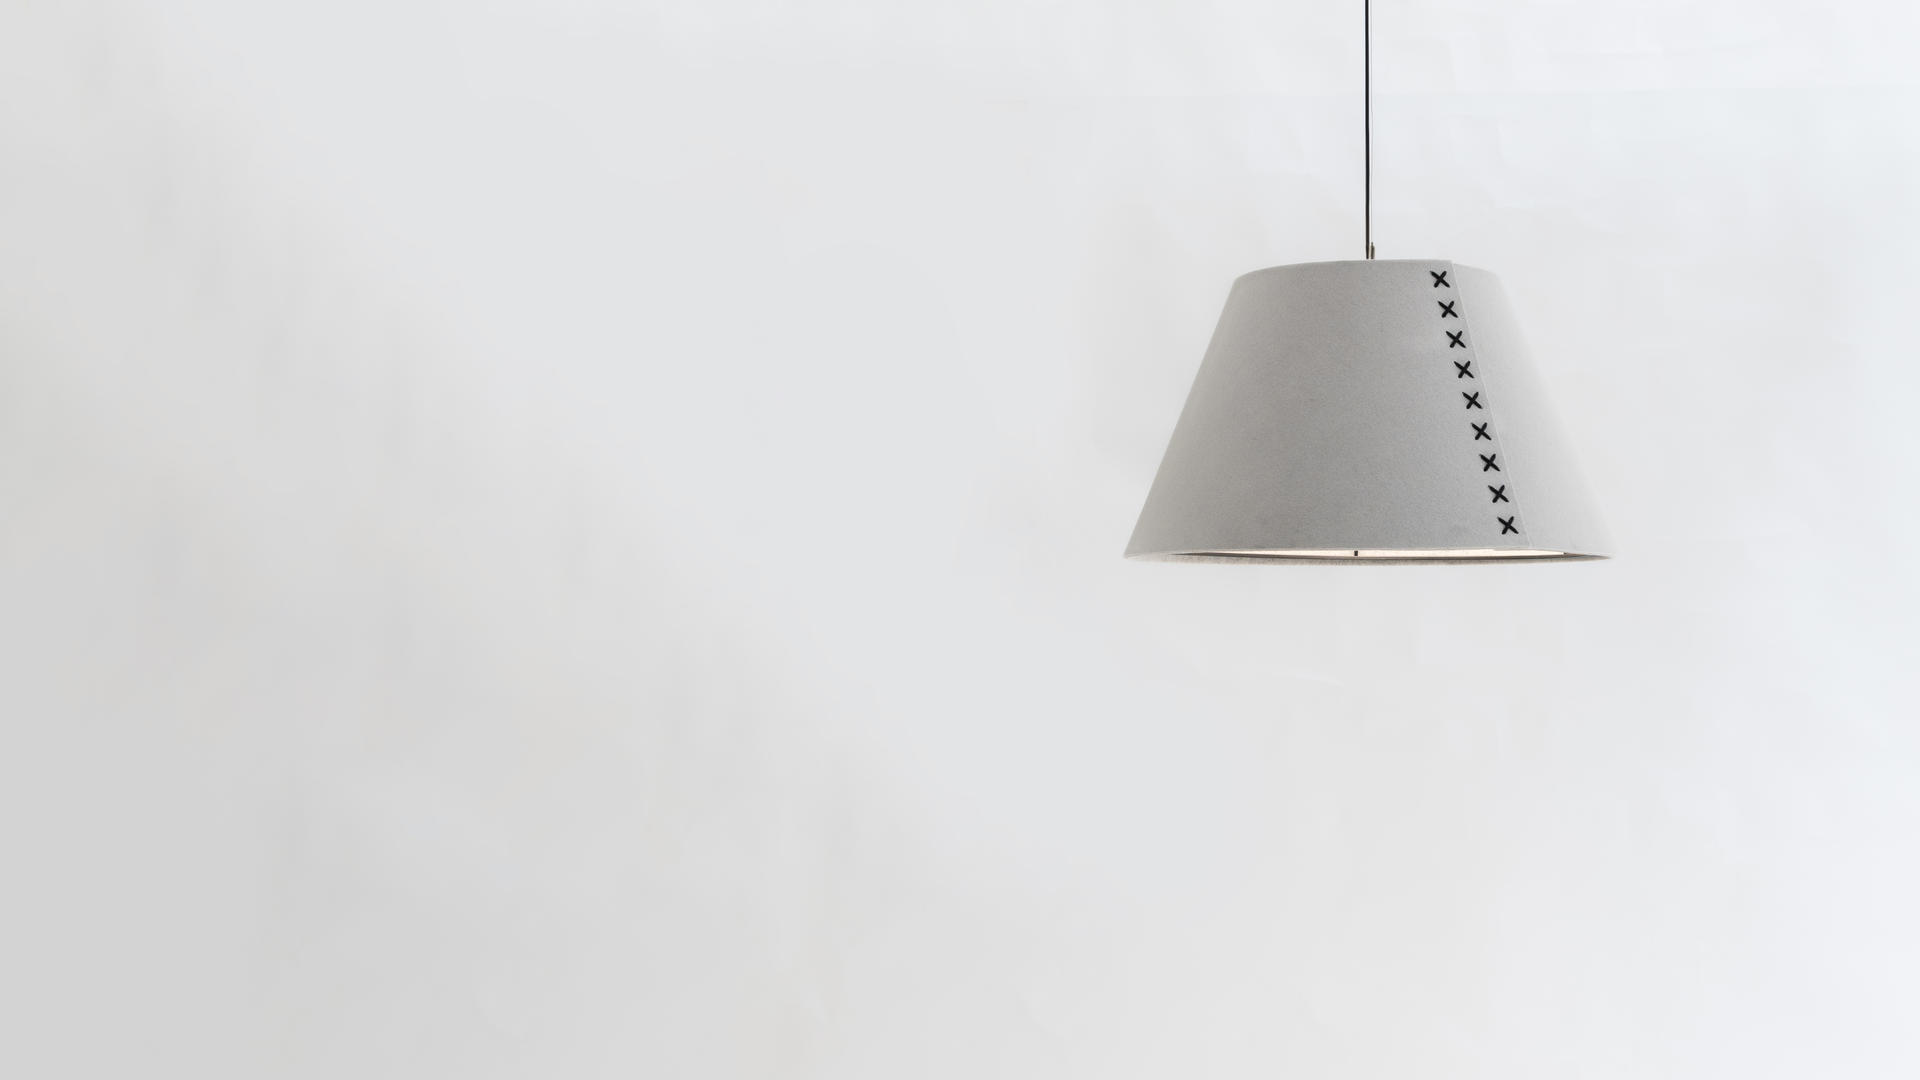 Buzzi & Buzzi Lighting buzzishade pendant, sound-absorbing lighting | buzzispace